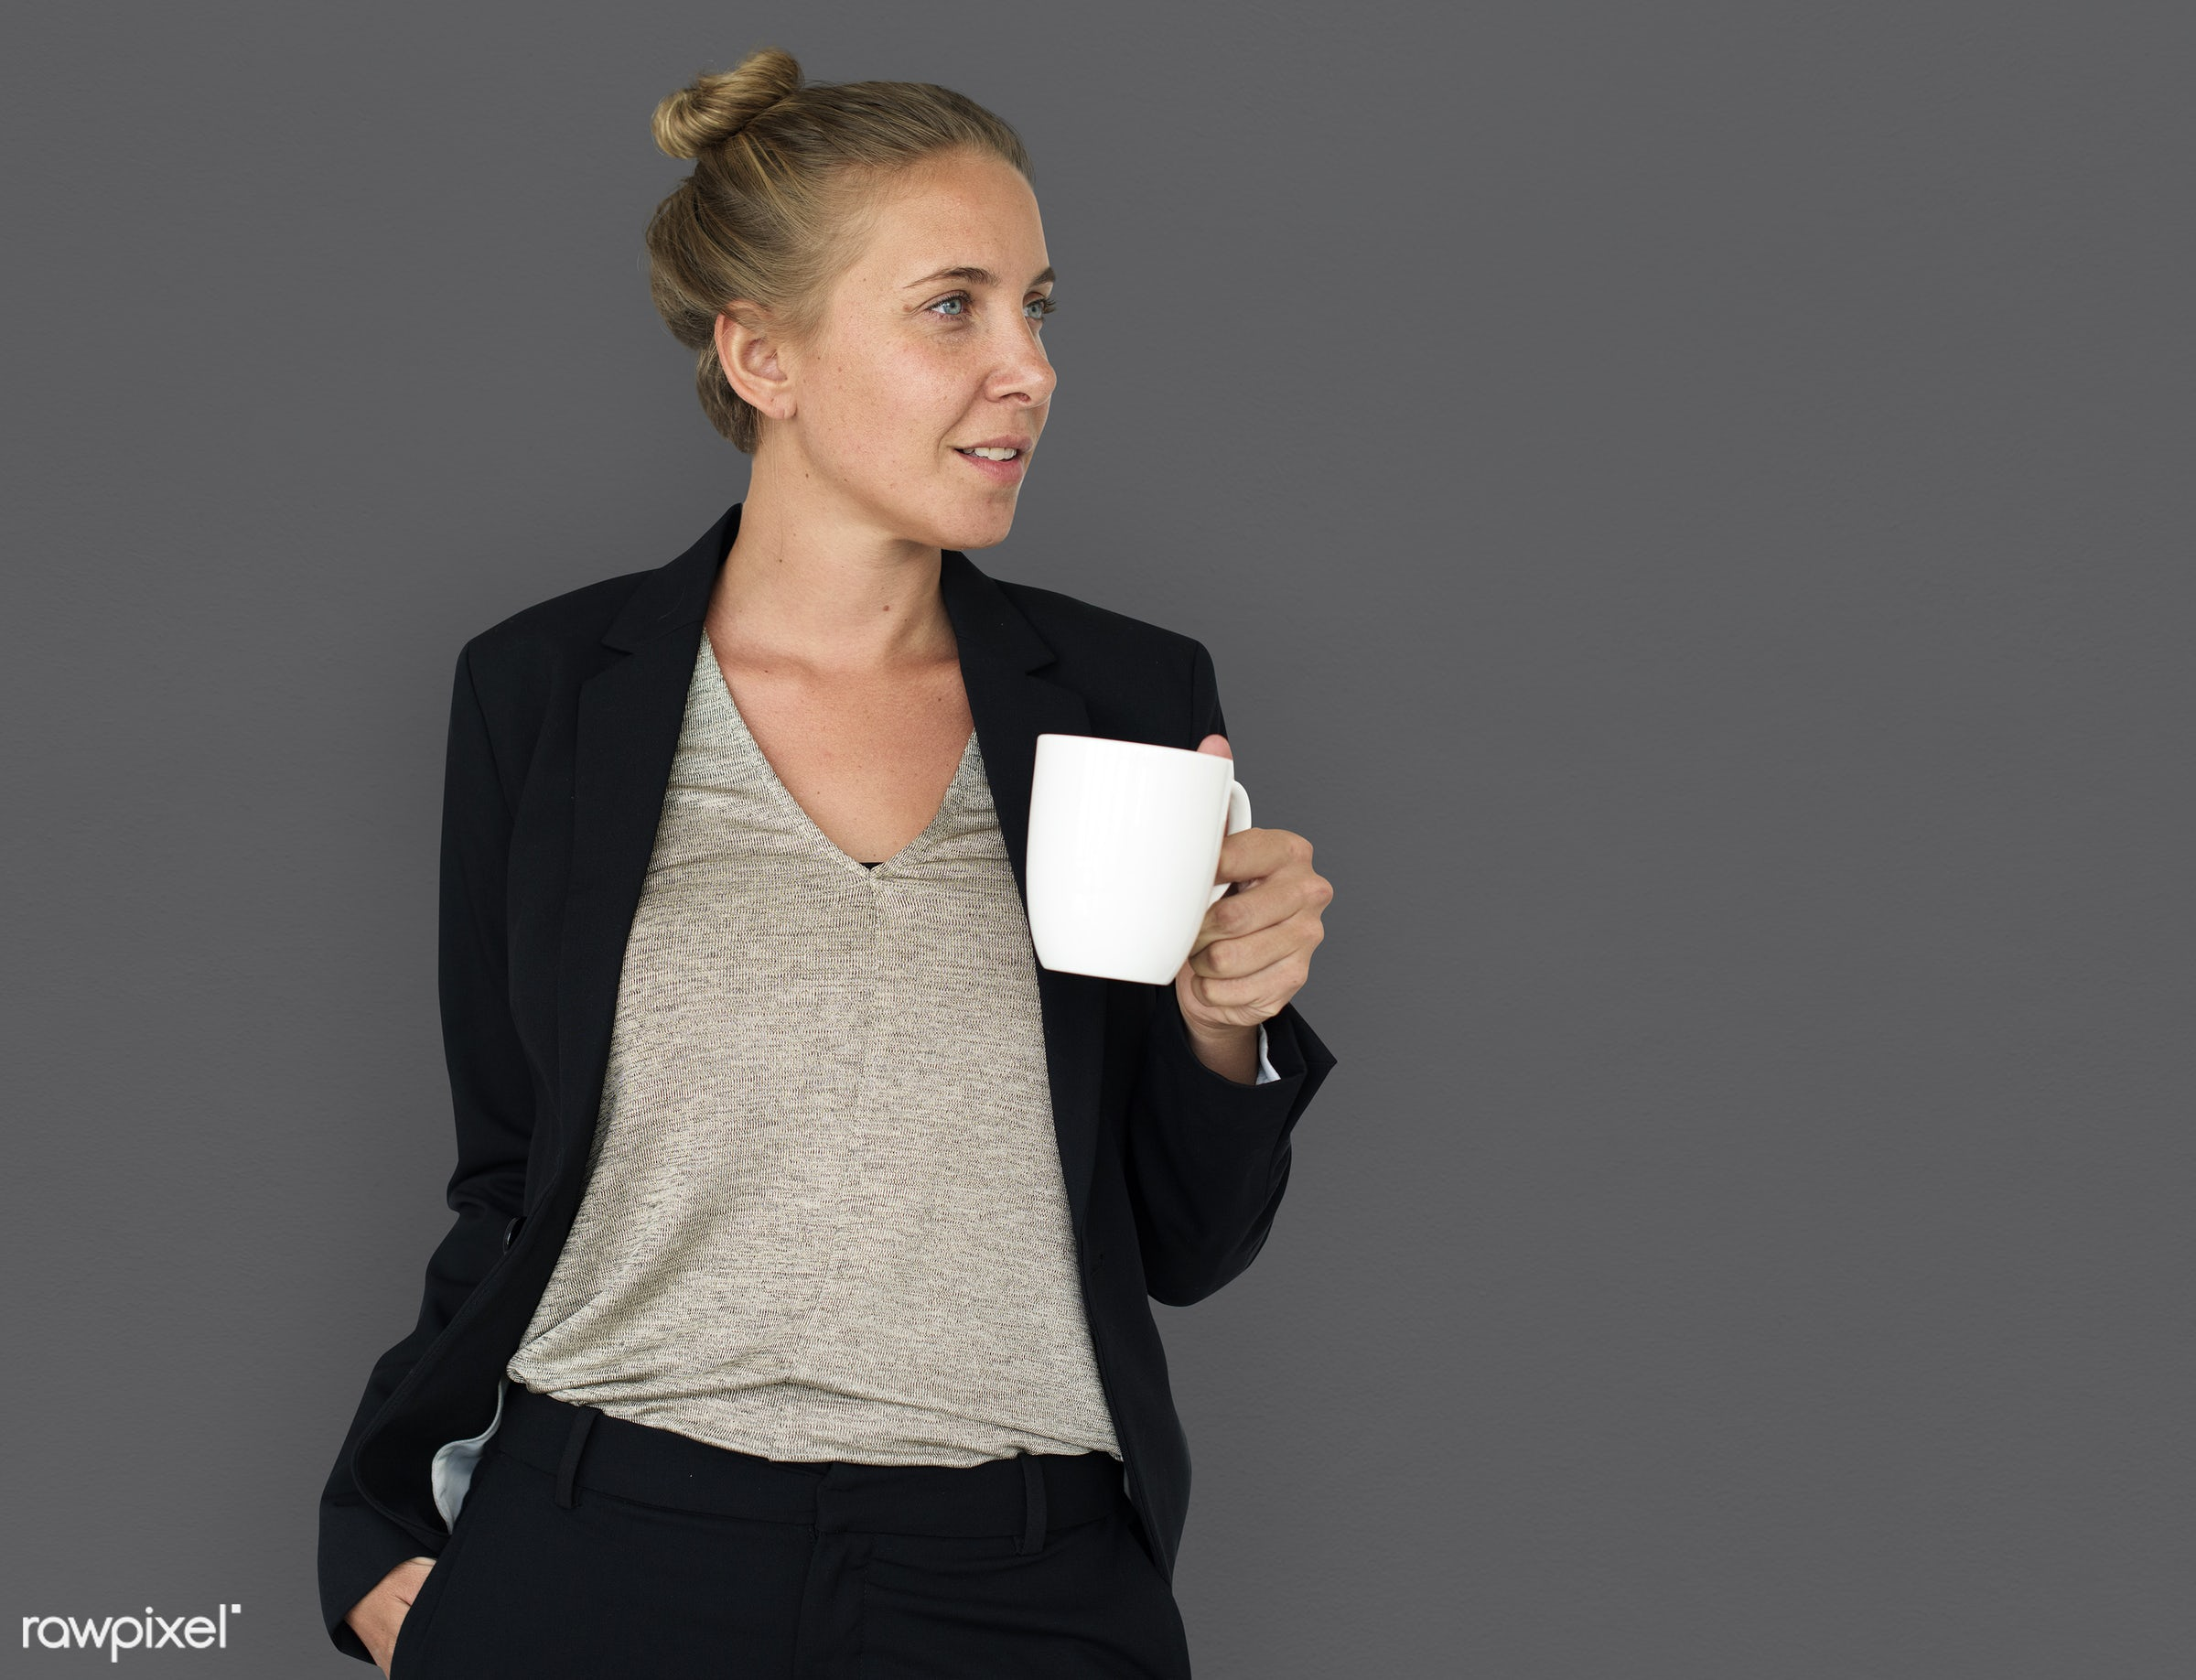 expression, studio, person, holding, drinking coffee, people, caucasian, pose, girl, woman, holding cup, smile, positive,...